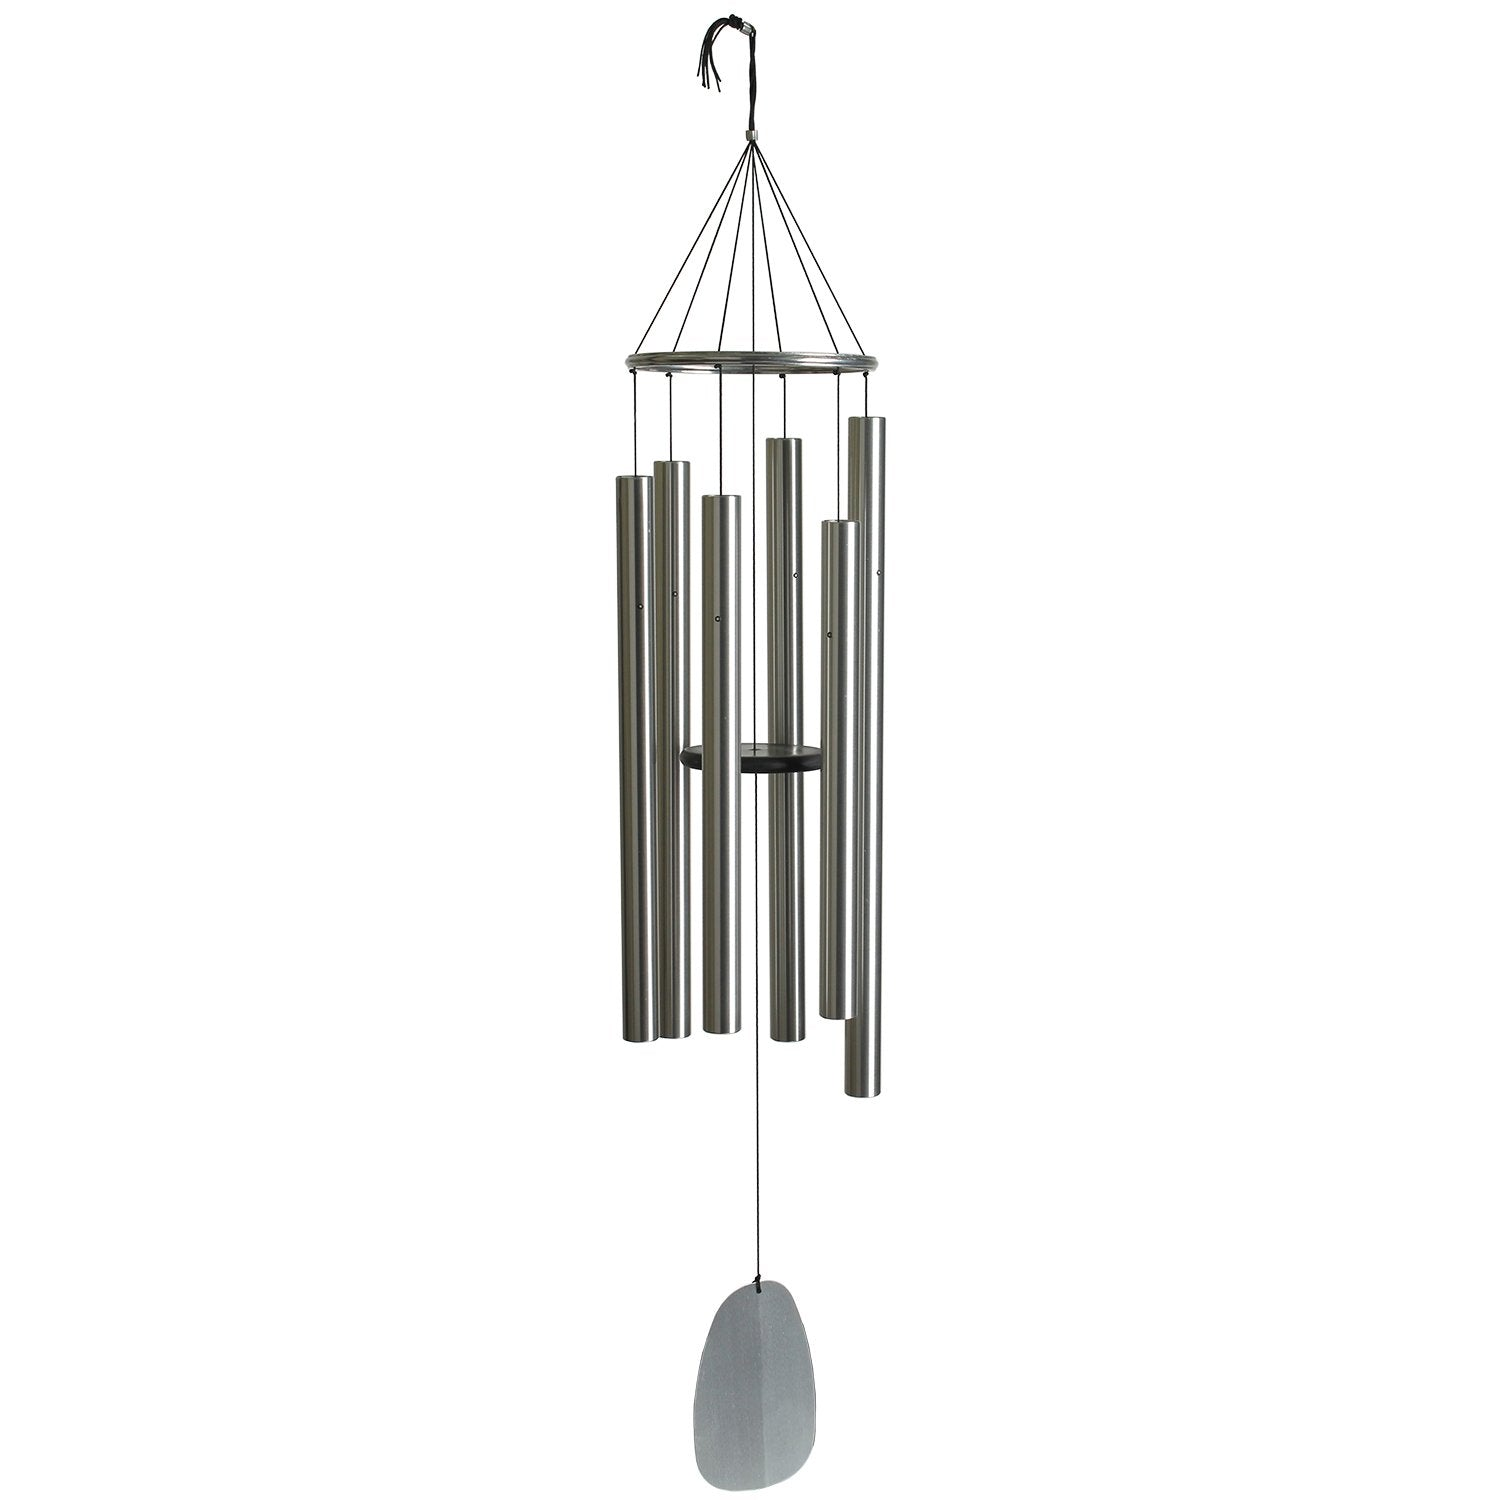 Bells of Paradise - Silver, 68-Inch full product image